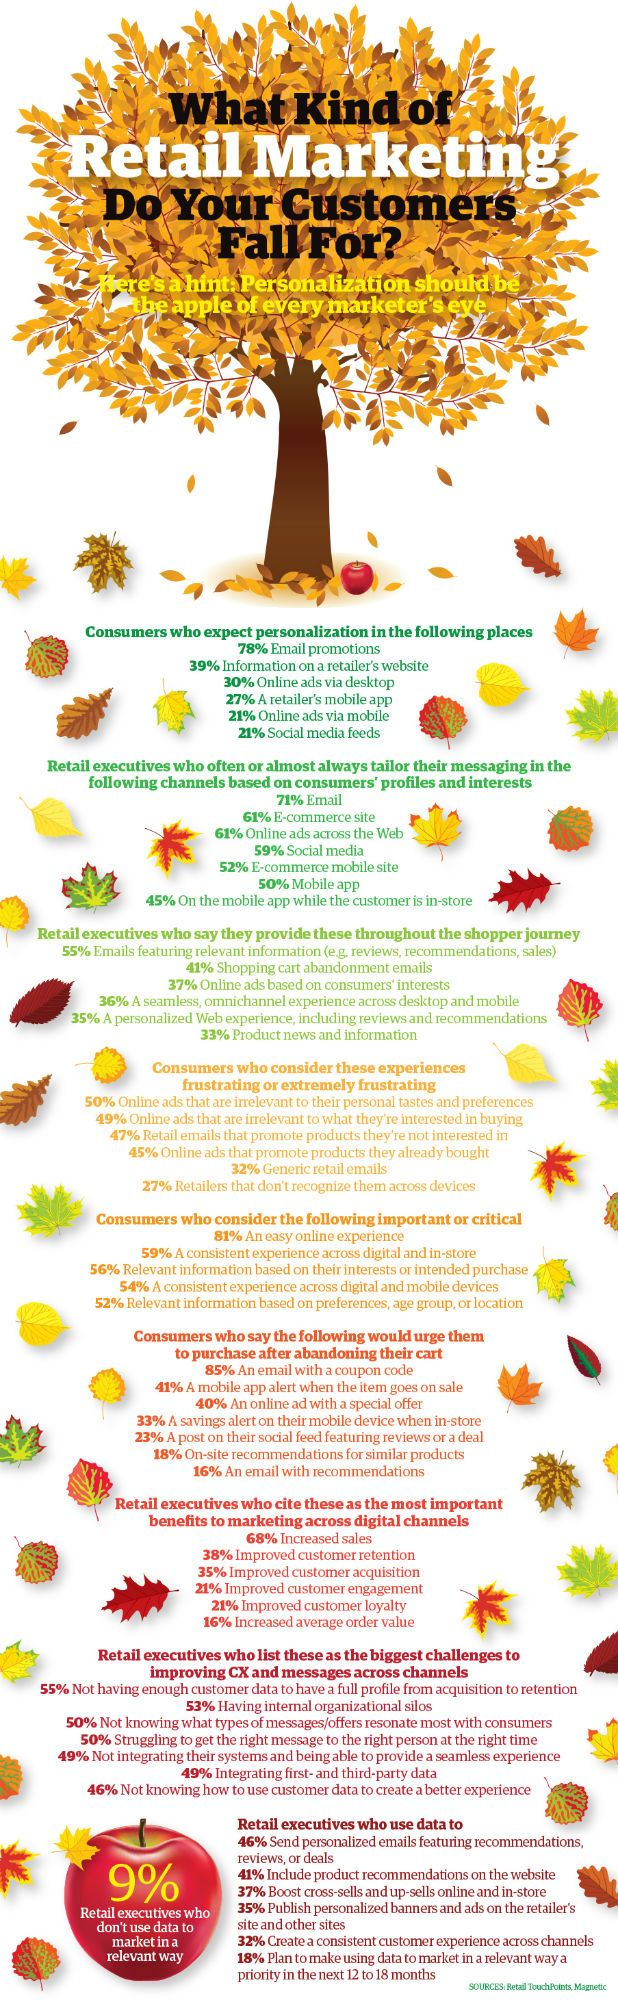 What Kind of Retail Marketing Do Your Customers Fall For? [Infographic] - Direct Marketing News